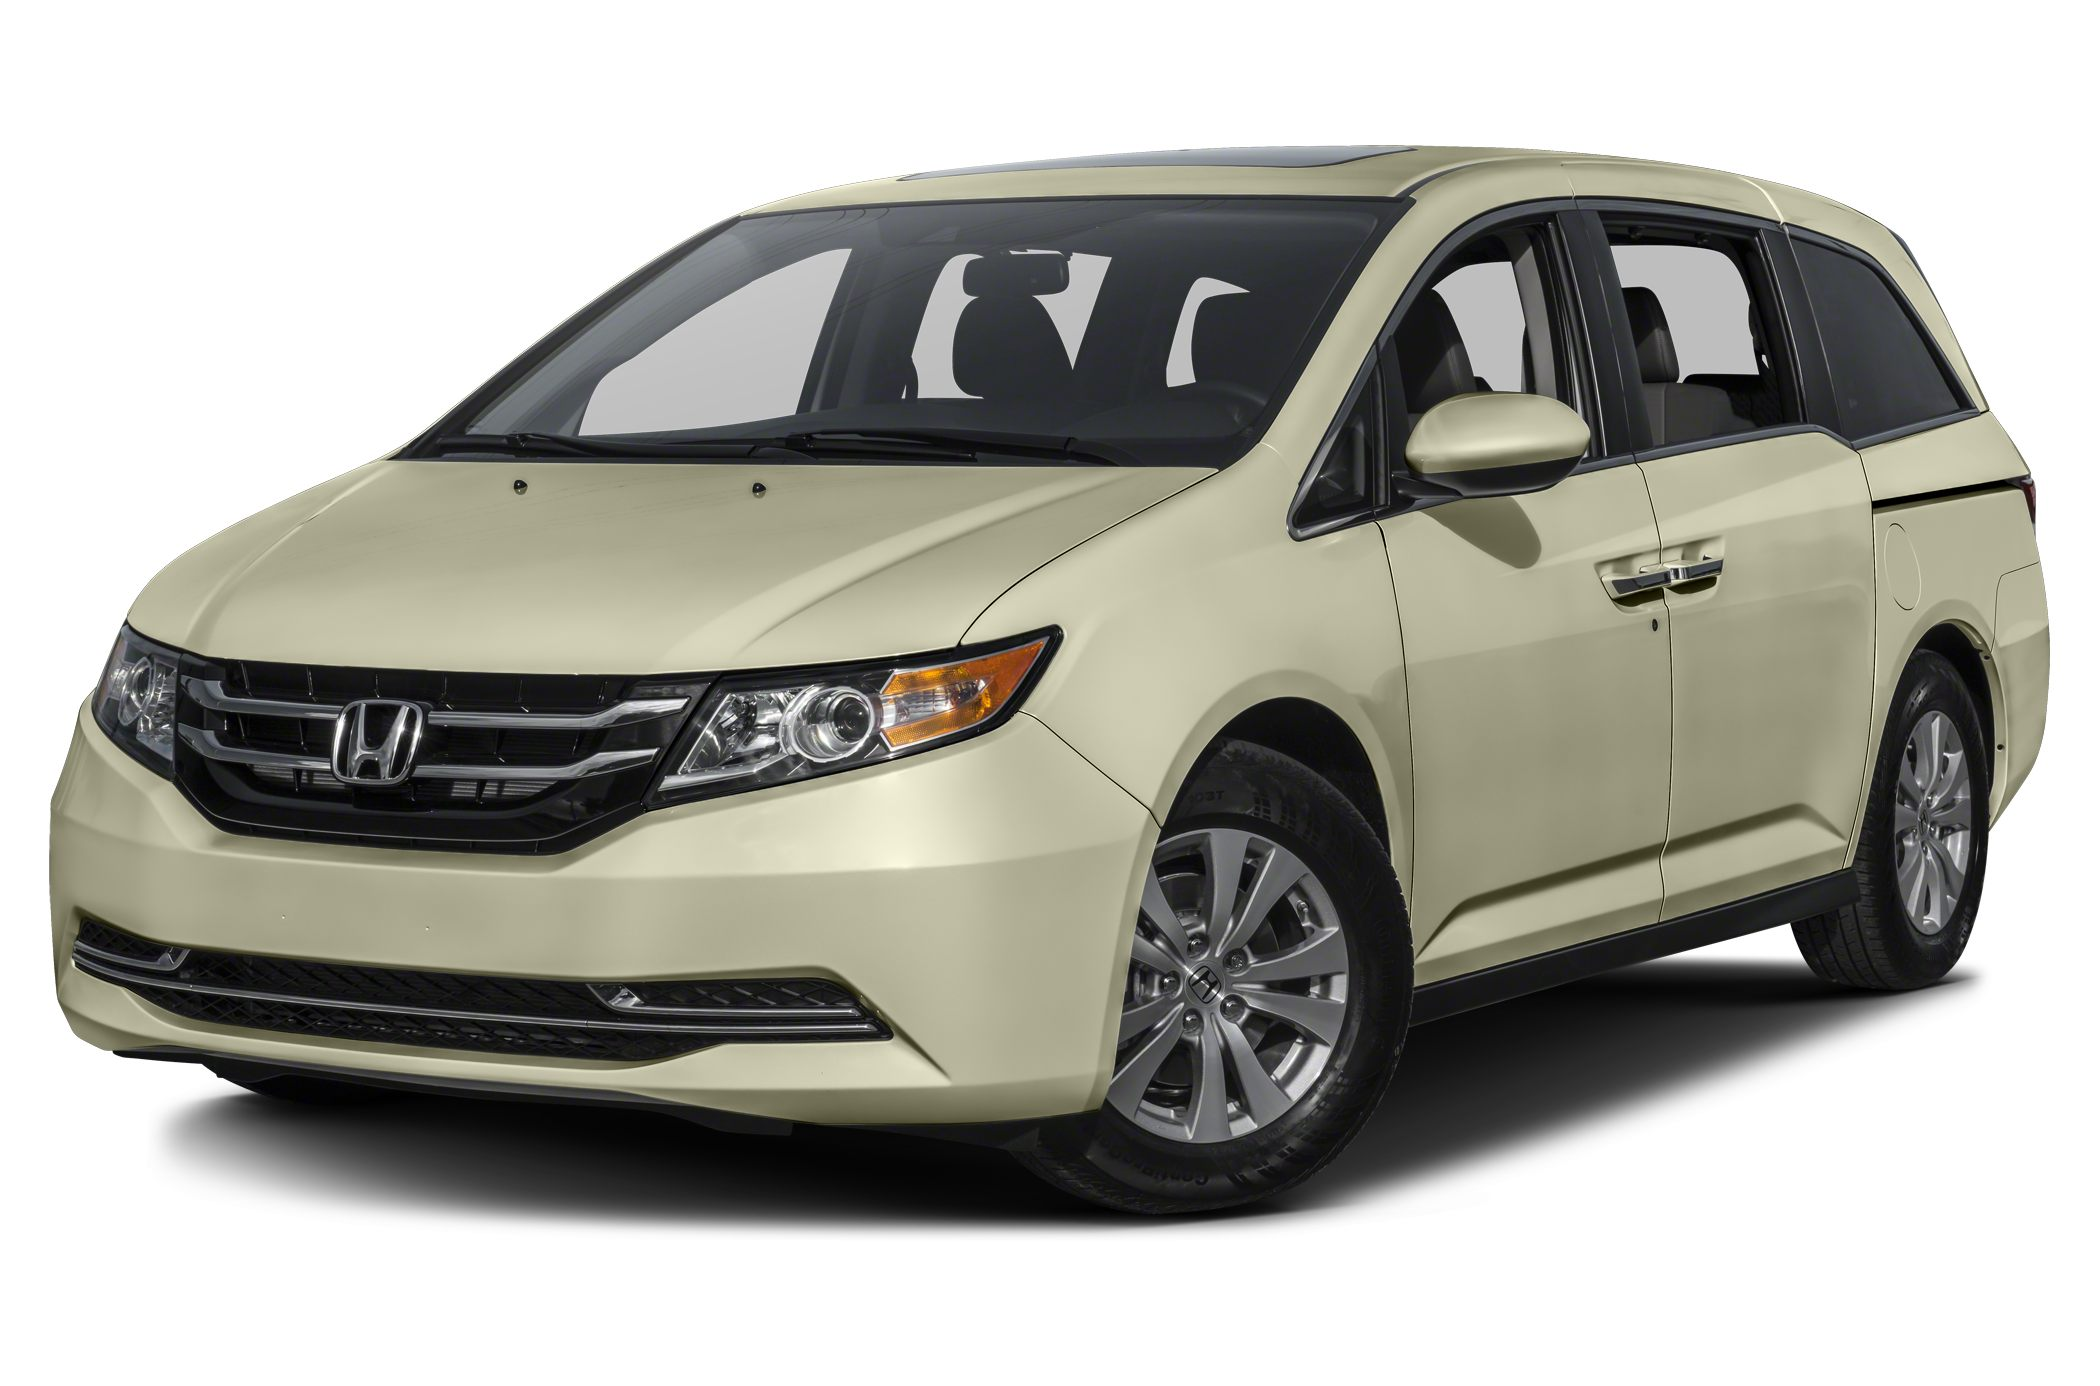 2016 Honda Odyssey EX-L This 2016 Honda Odyssey EX-L is offered to you for sale by Fenton Honda Of